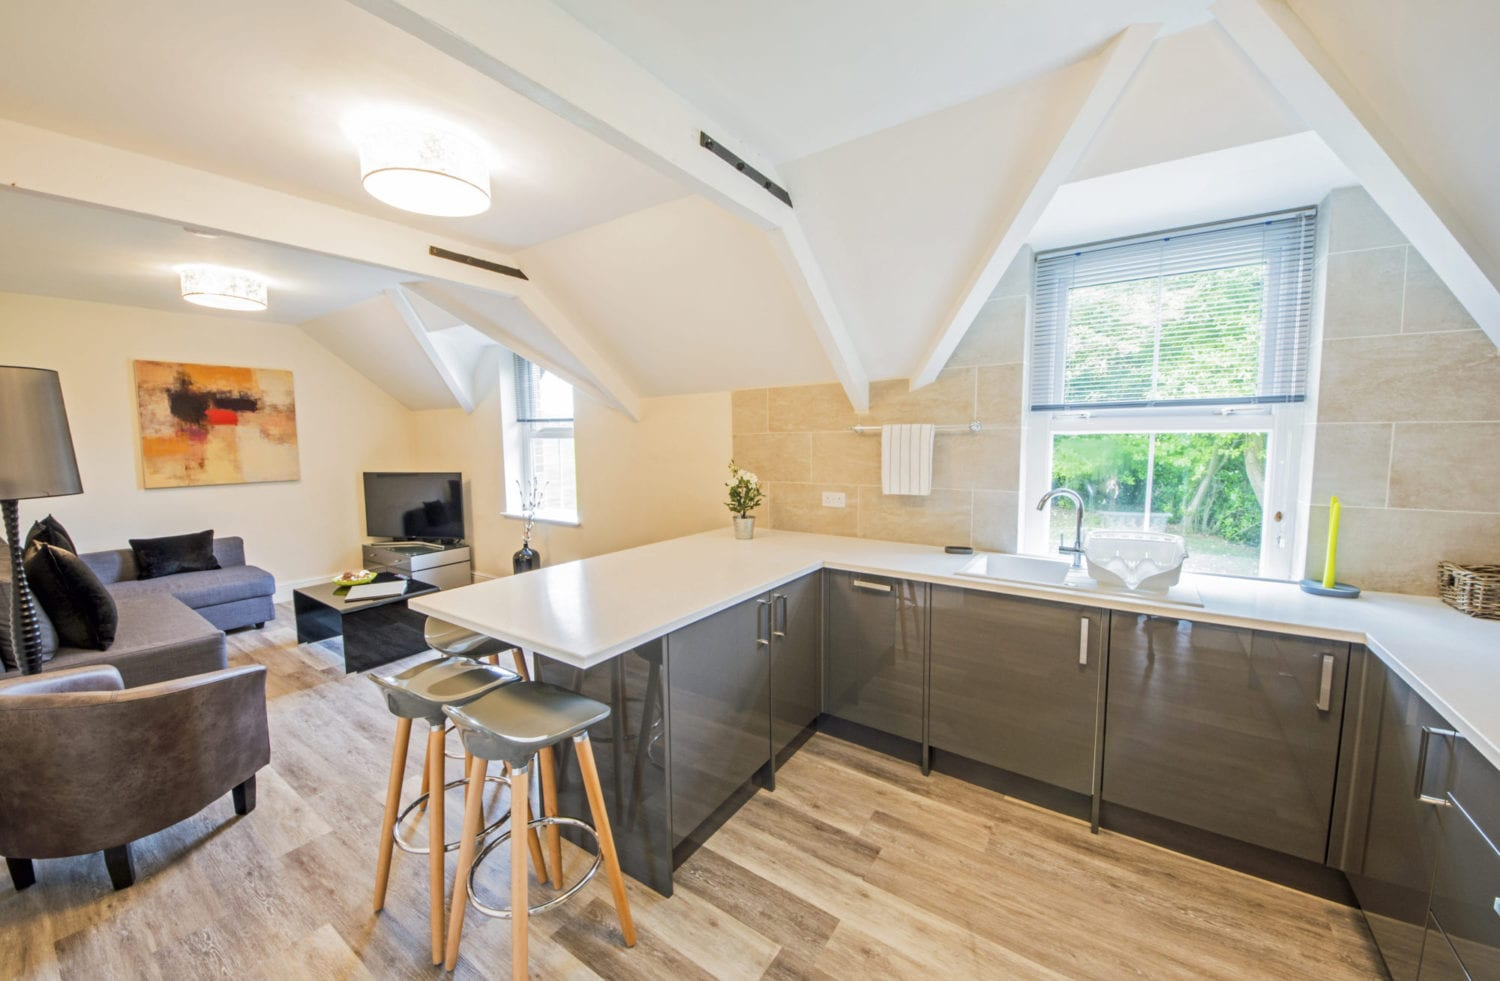 South Wales Holiday Accommodation, Emilia Apartment - kitchen interior of luxury apartment